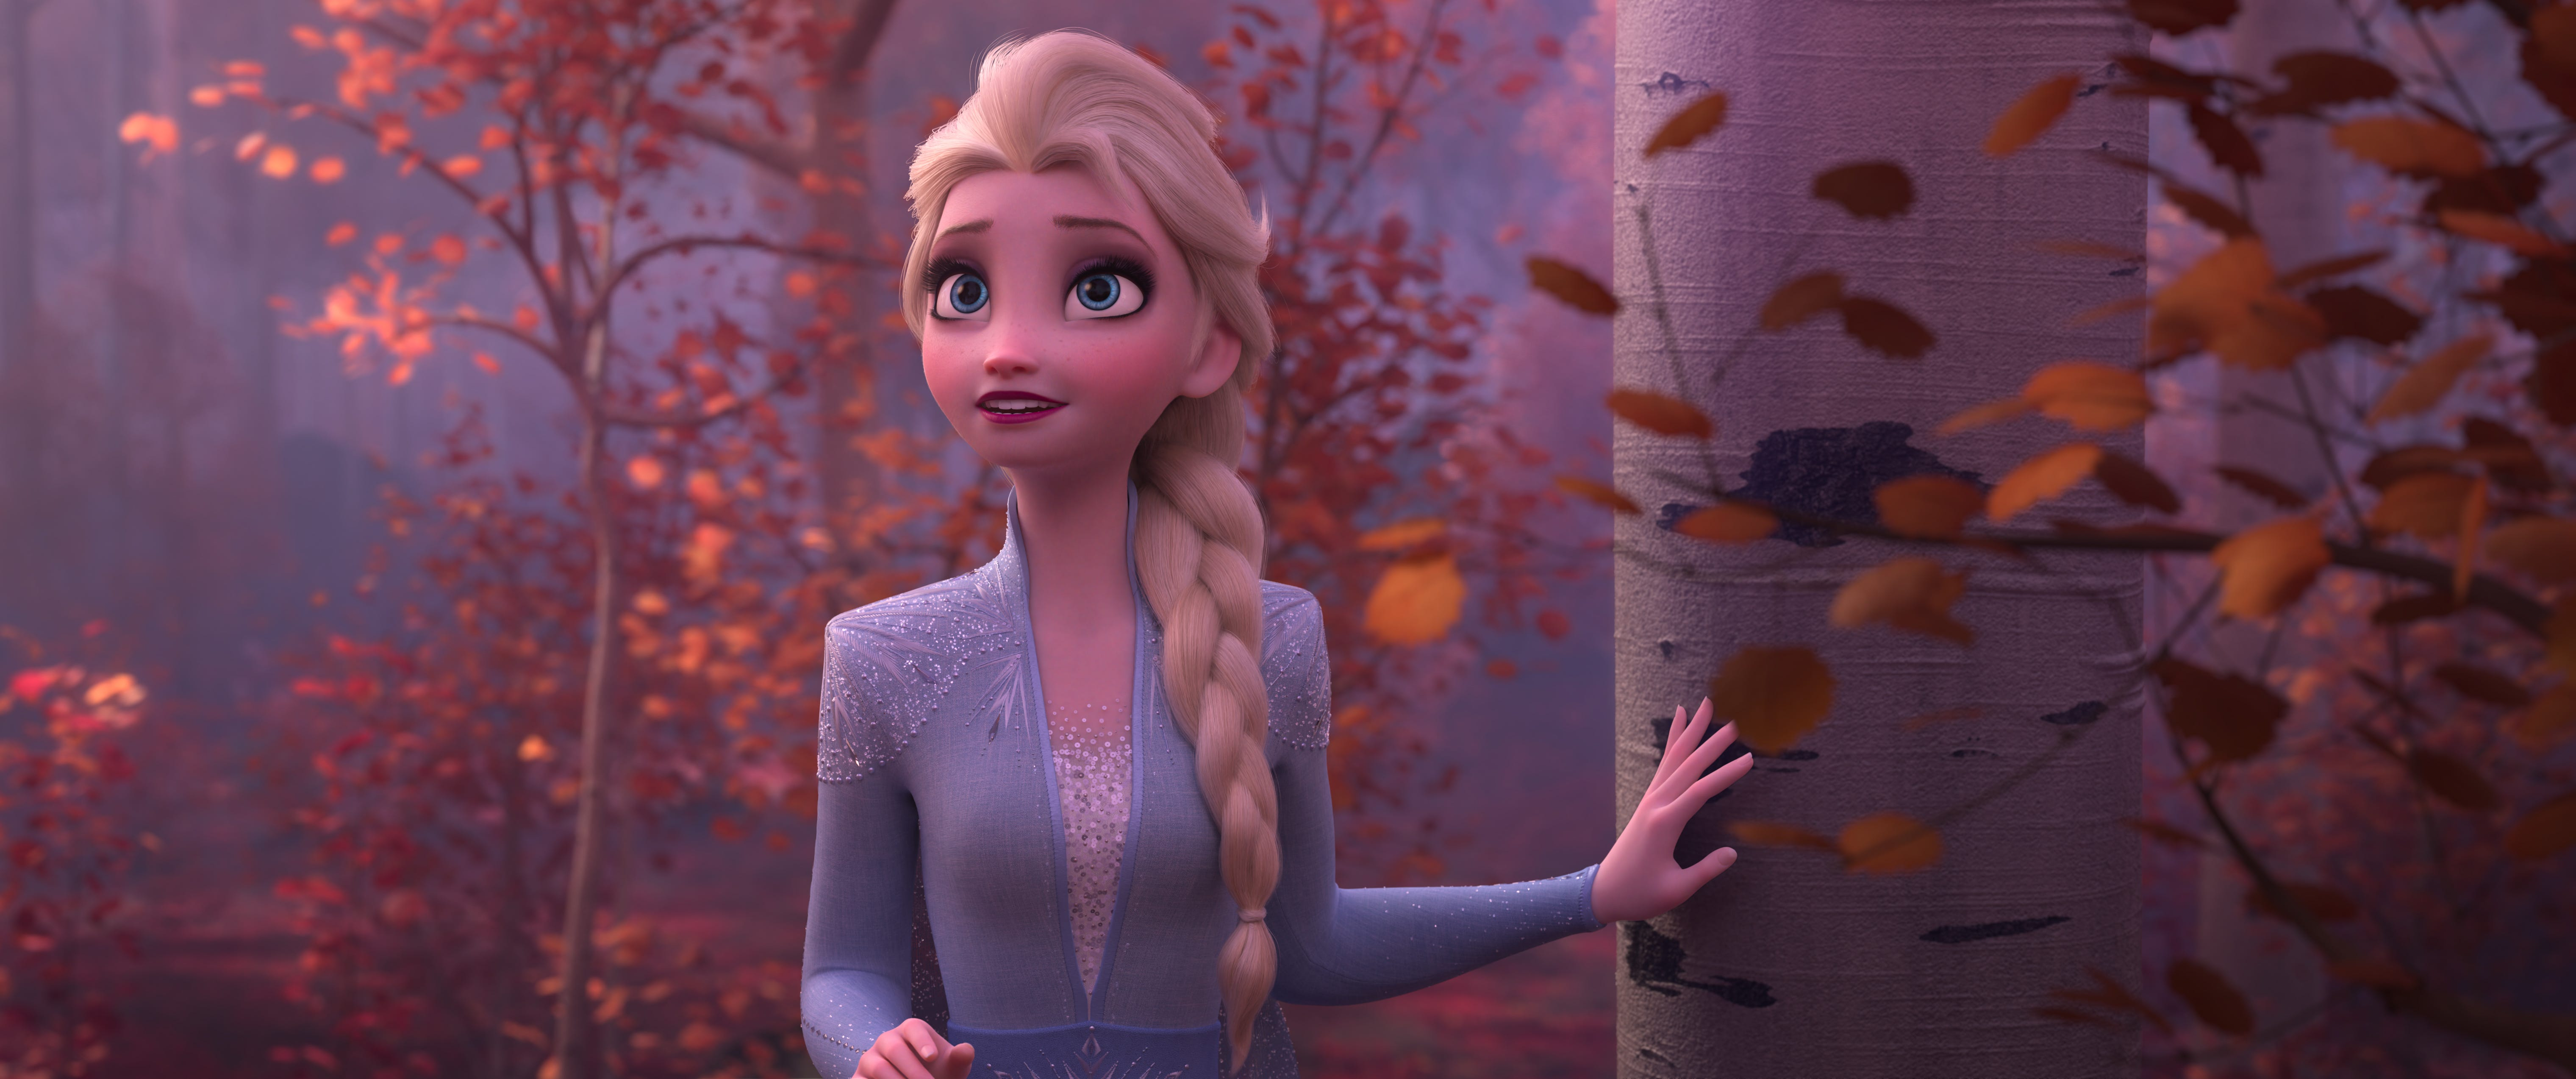 Frozen 2' spoilers: Anna, Elsa embrace new roles in Disney